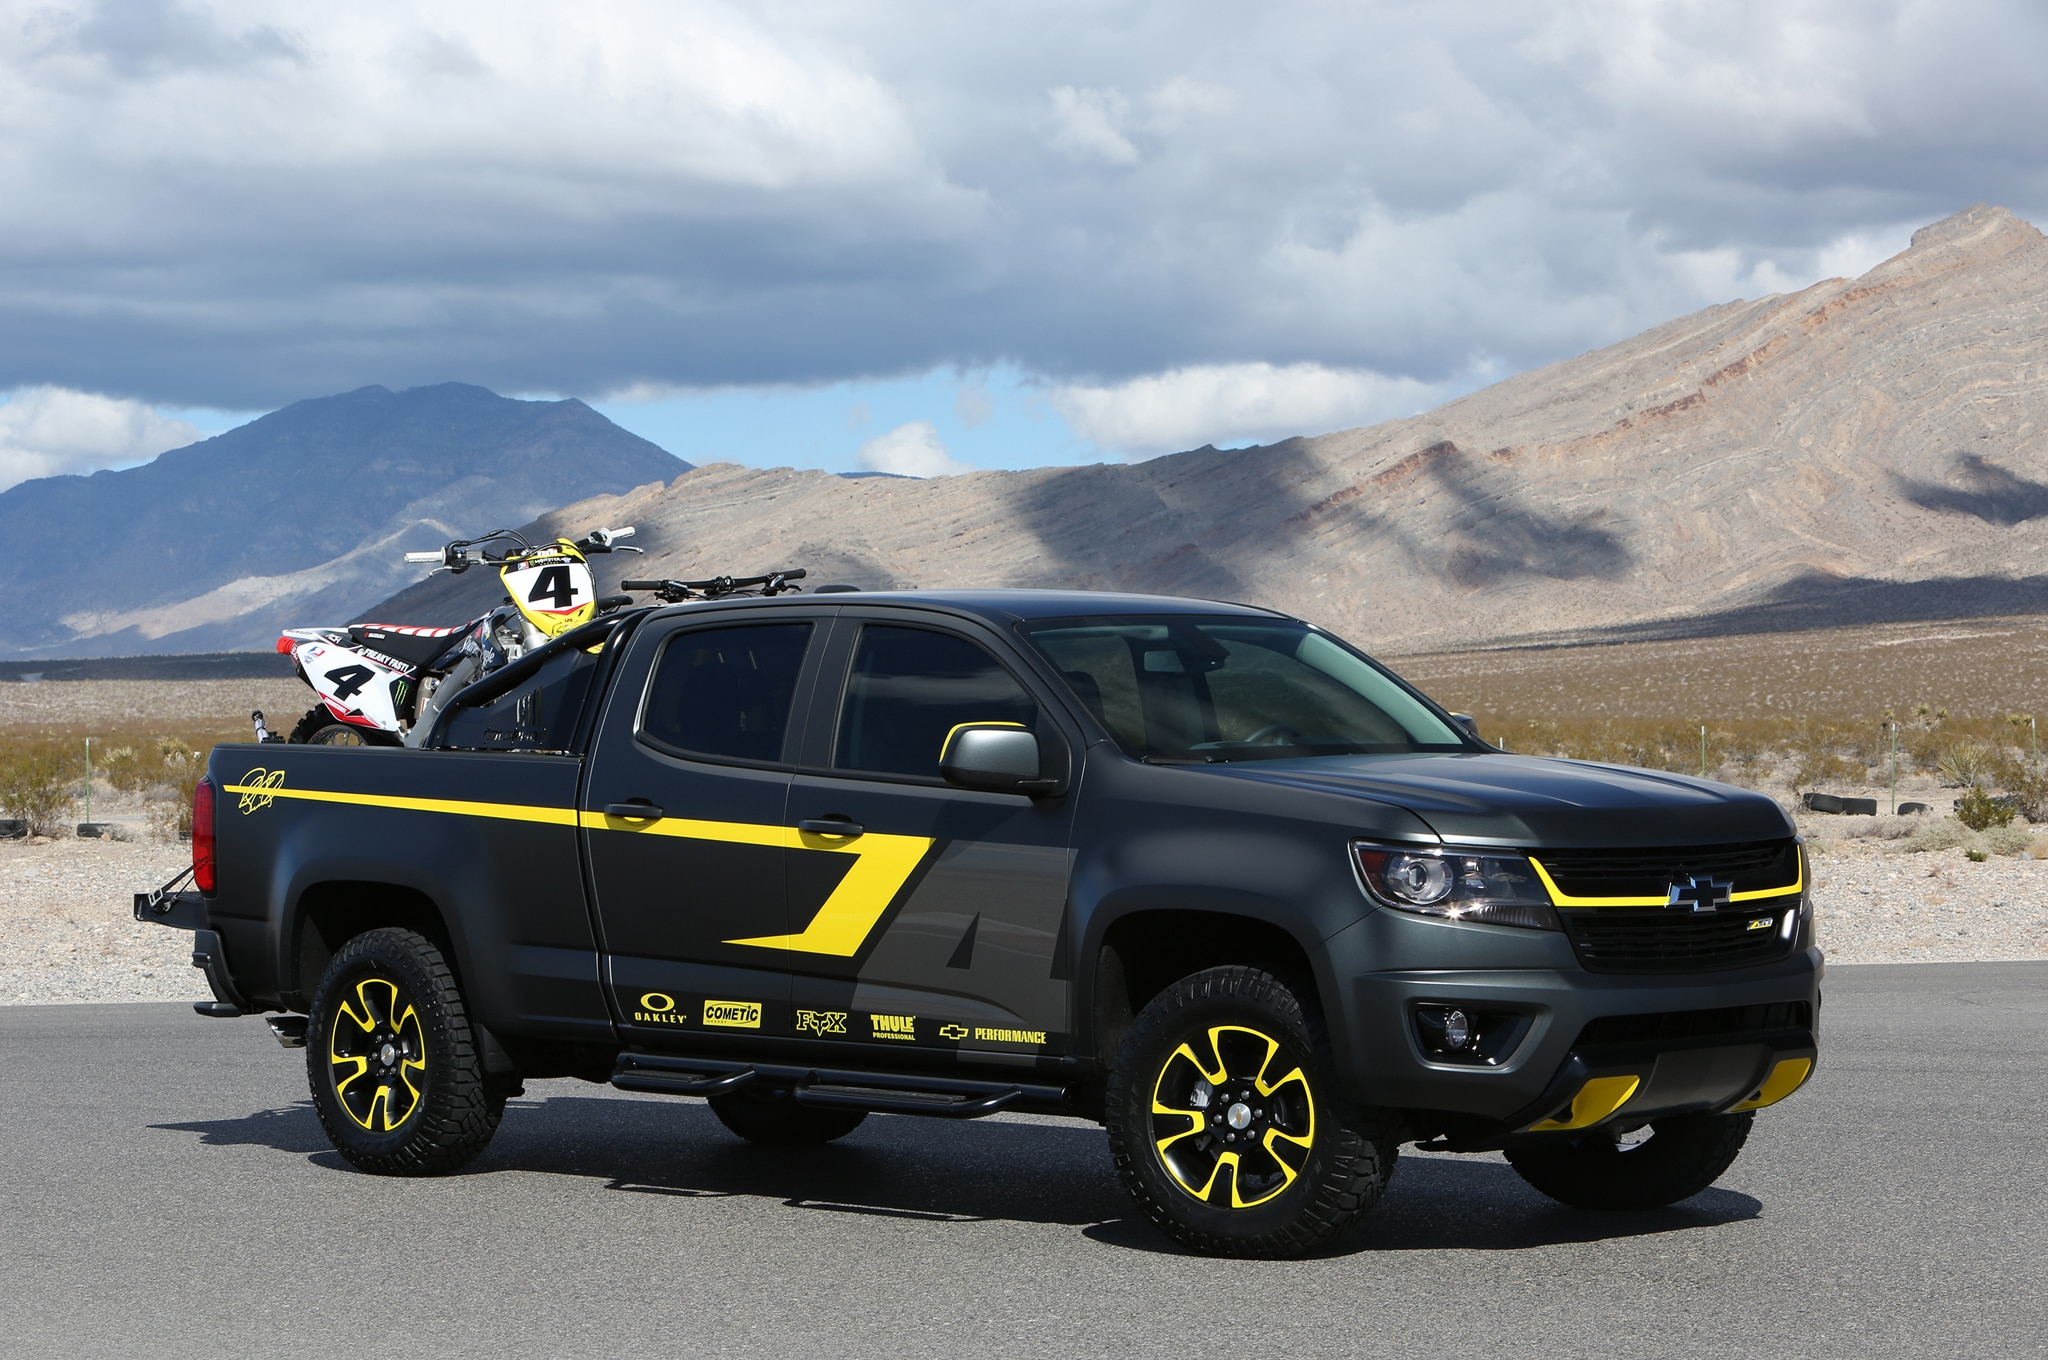 2015 Chevrolet Colorado Performance Concept for 2014 SEMA Show front three quarter 02 diagram circuitos wiring harness chevrolet colorado 2012  at crackthecode.co